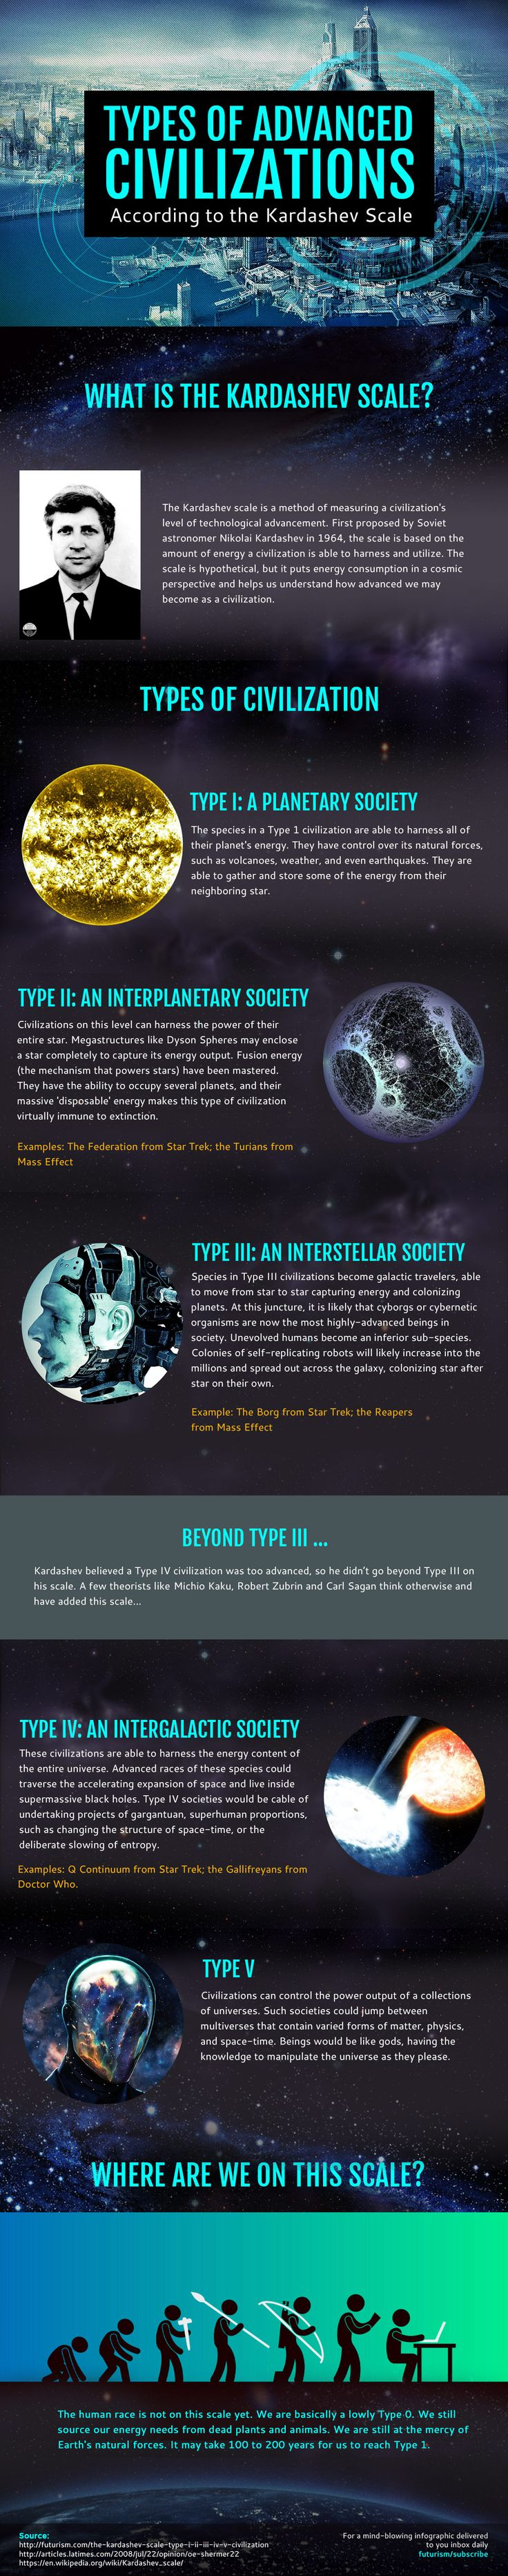 Kardashev Scale: The Kinds of Alien Civilizations in Our Universe - https://en.wikipedia.org/wiki/Kardashev_scale - http://futurism.com/images/kardashev-scale-the-kinds-of-alien-civilizations-in-our-universe/